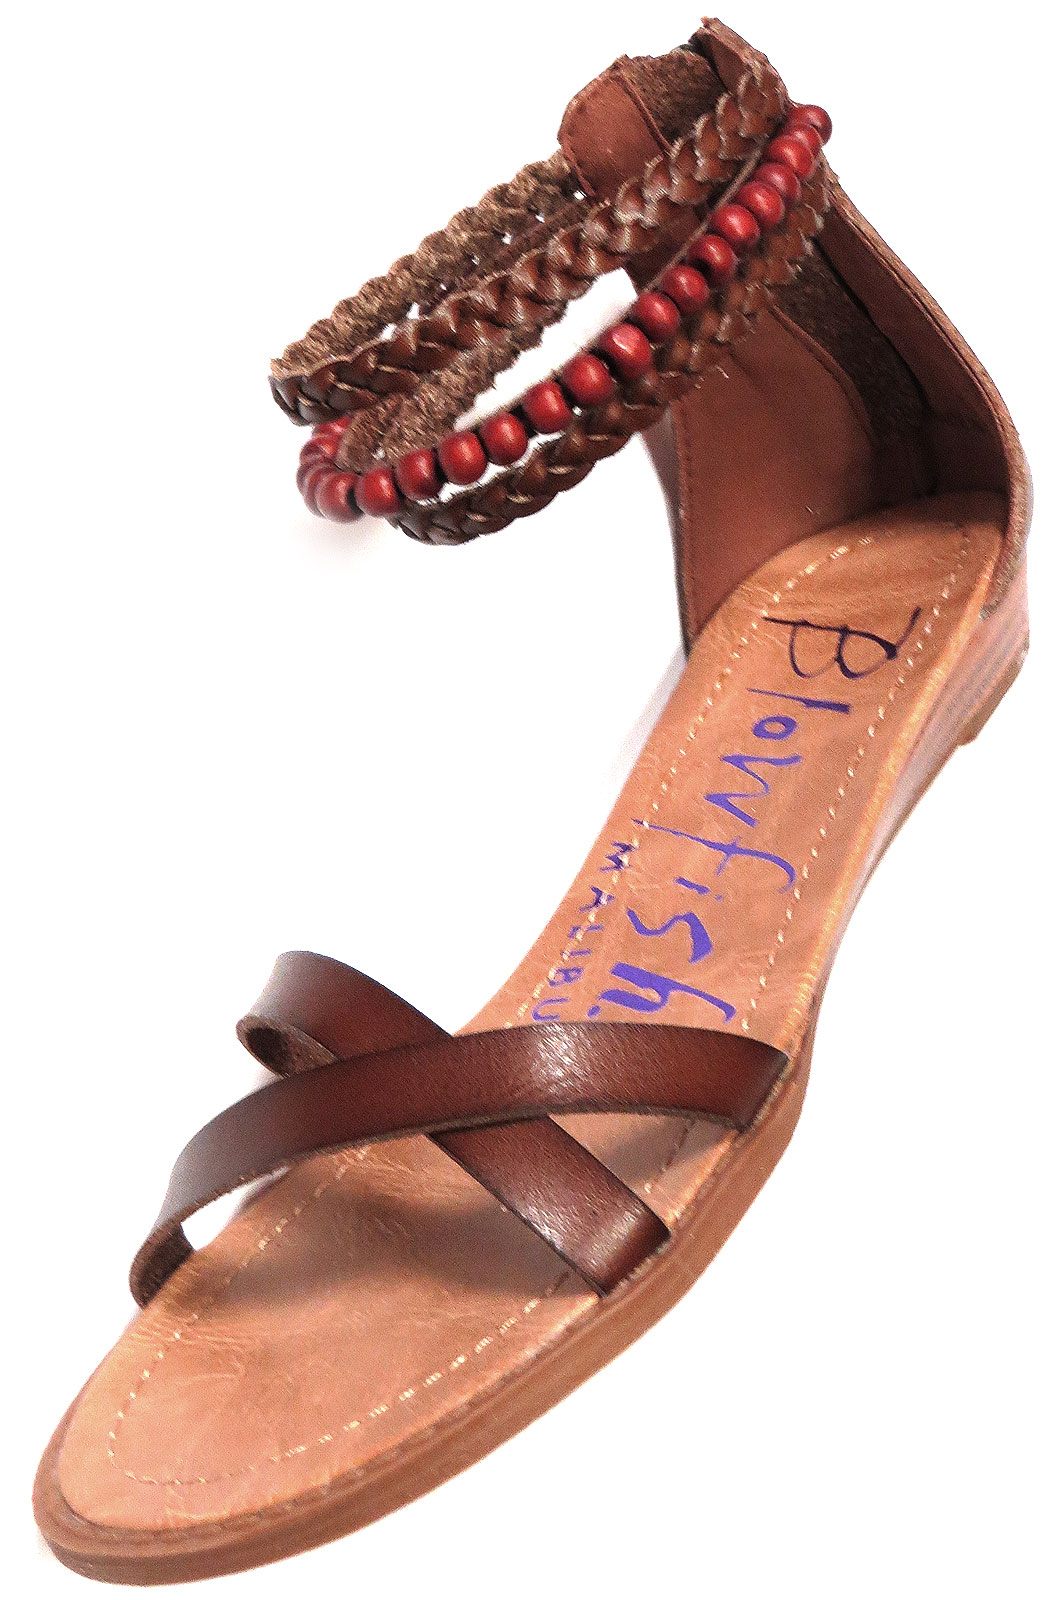 af449356b03e Vegan leather sandal with braided   beaded ankle straps